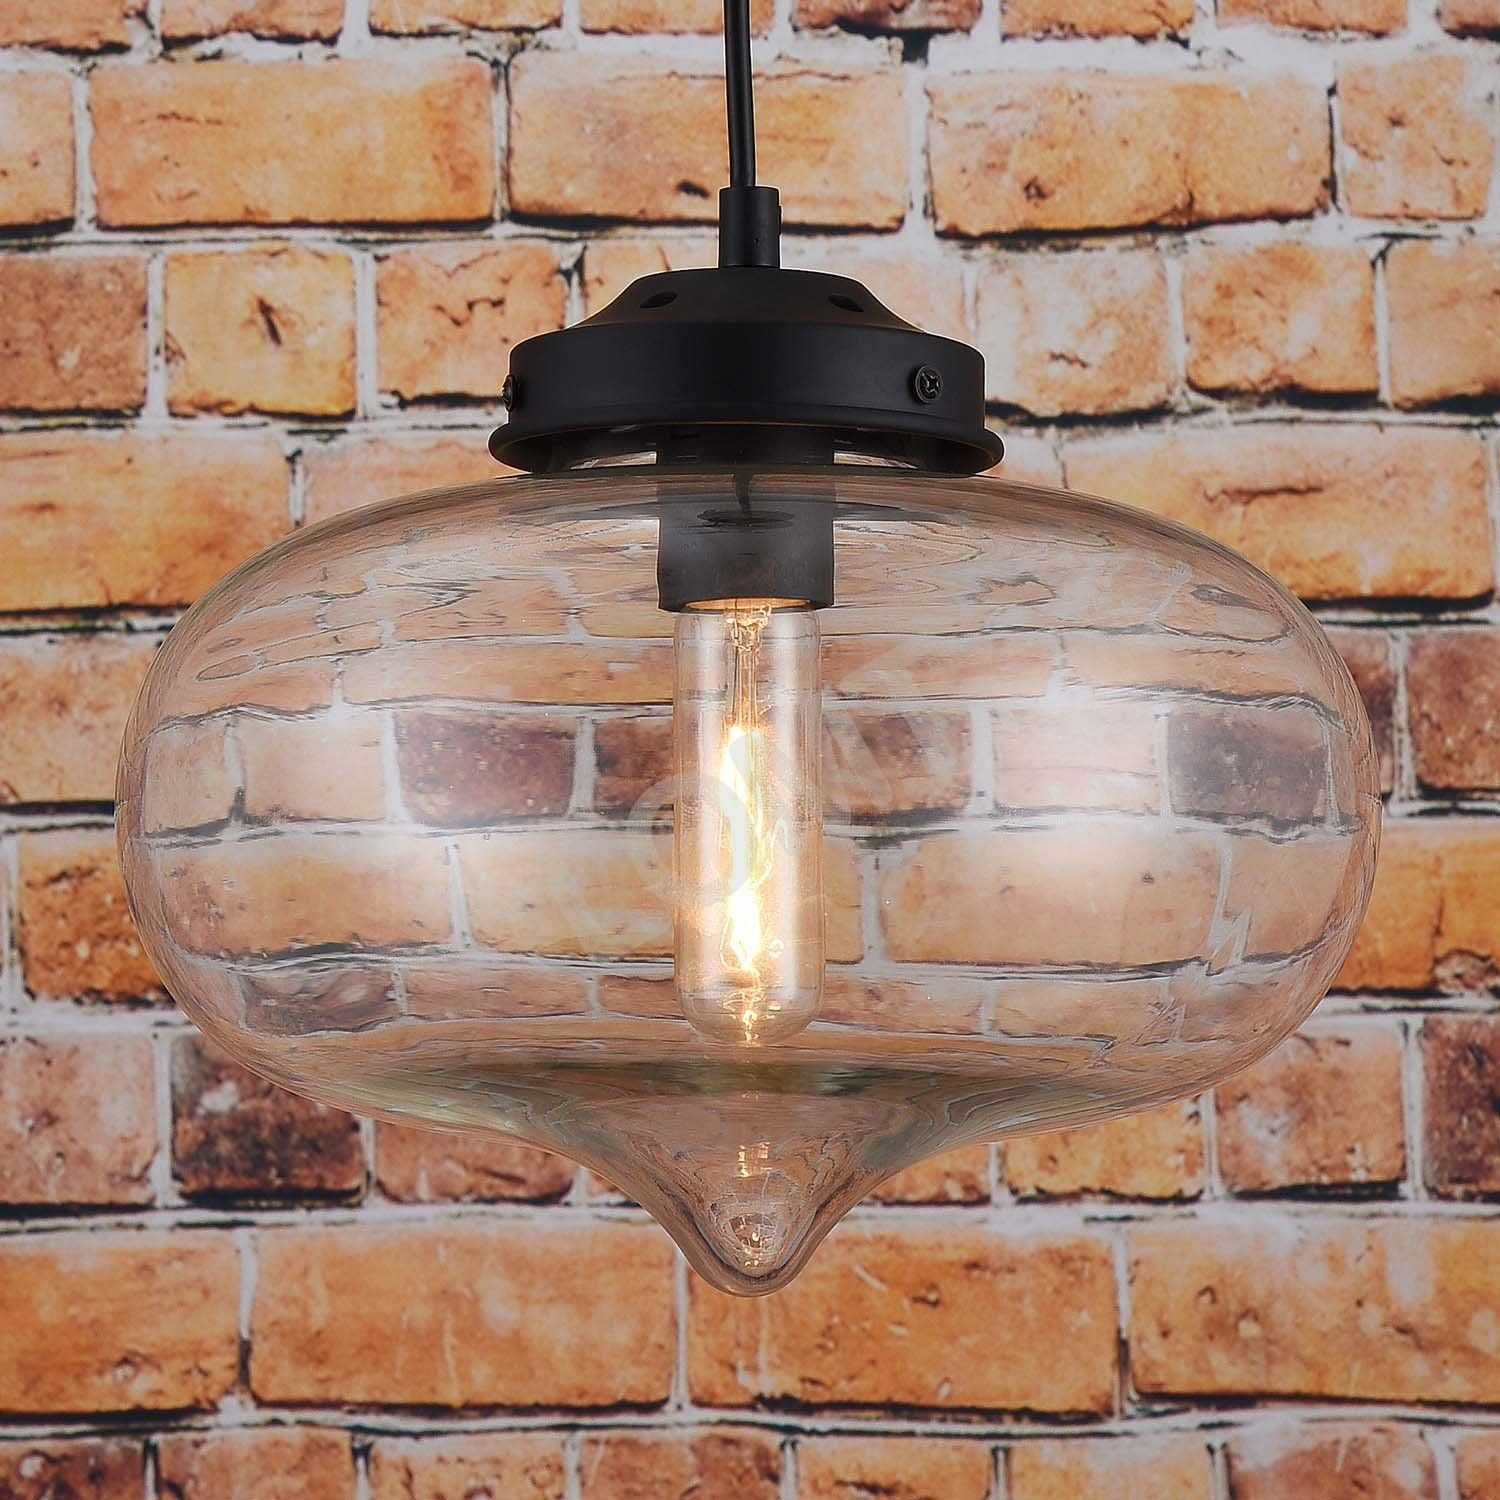 Suspension industrielle en verre moderne plafond lampe goutte d 39 eau amaz - Grosse suspension luminaire ...